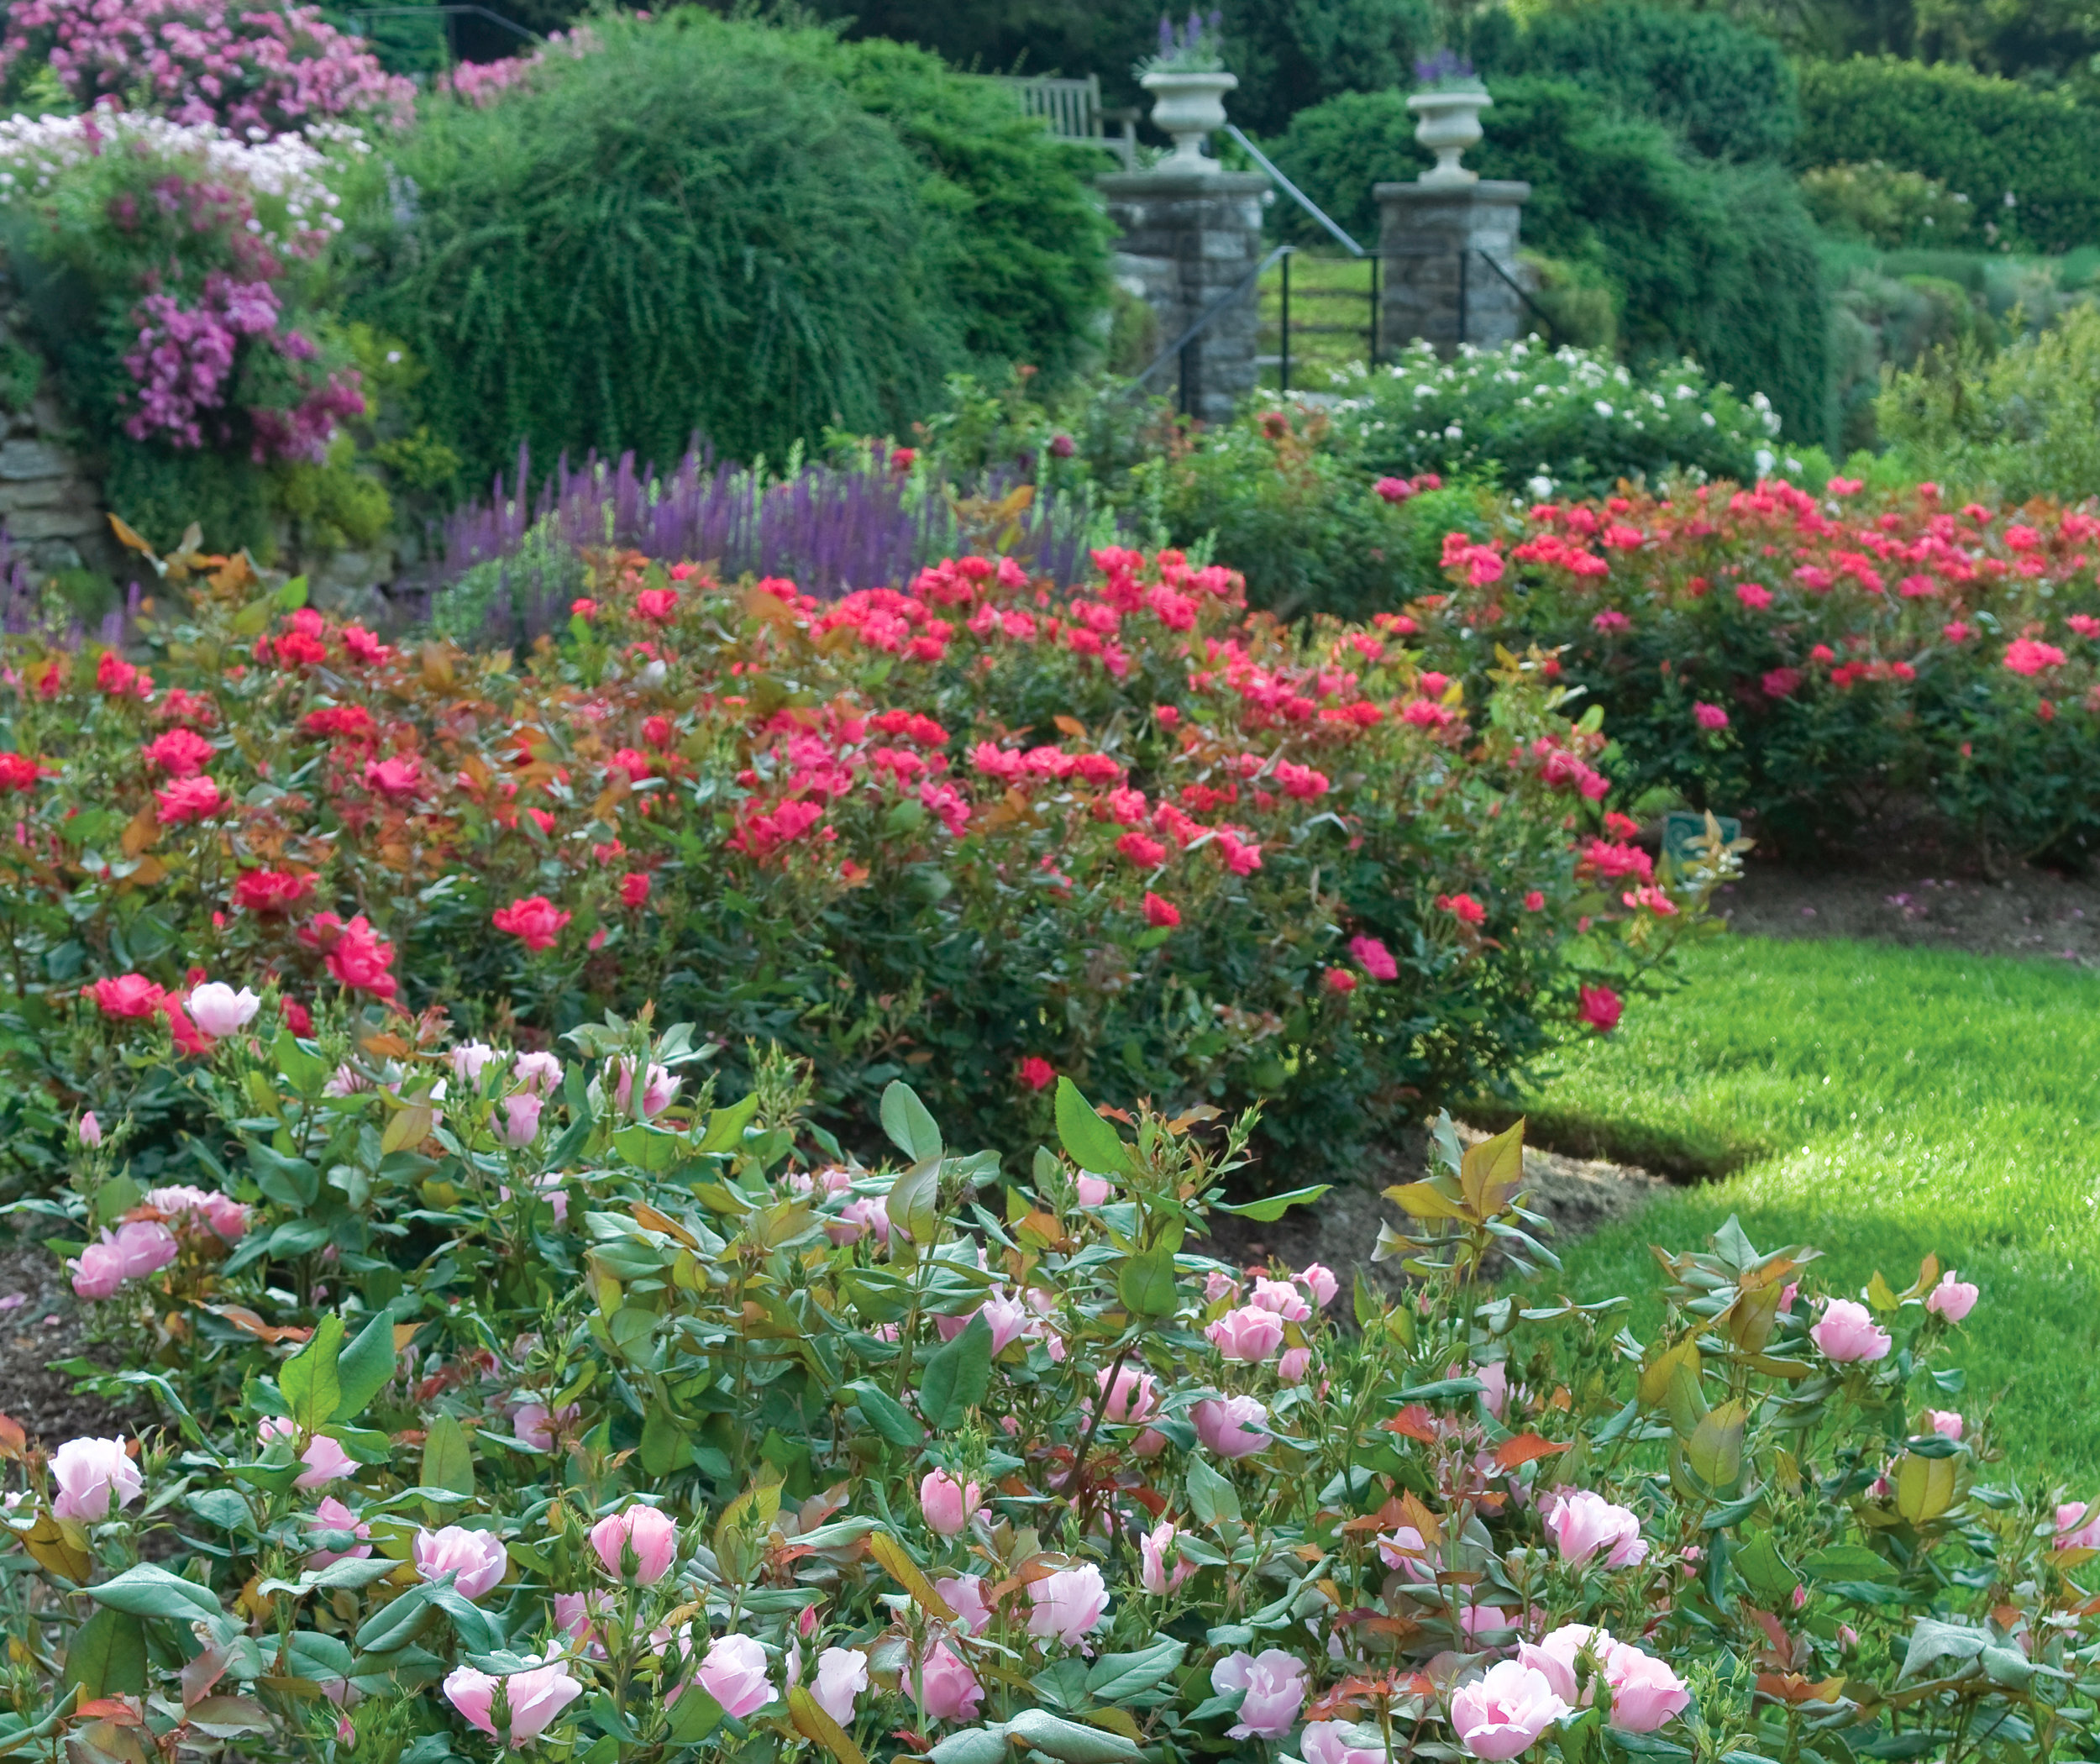 Gardening For Curb Appeal The Knock Out Family Of Roses